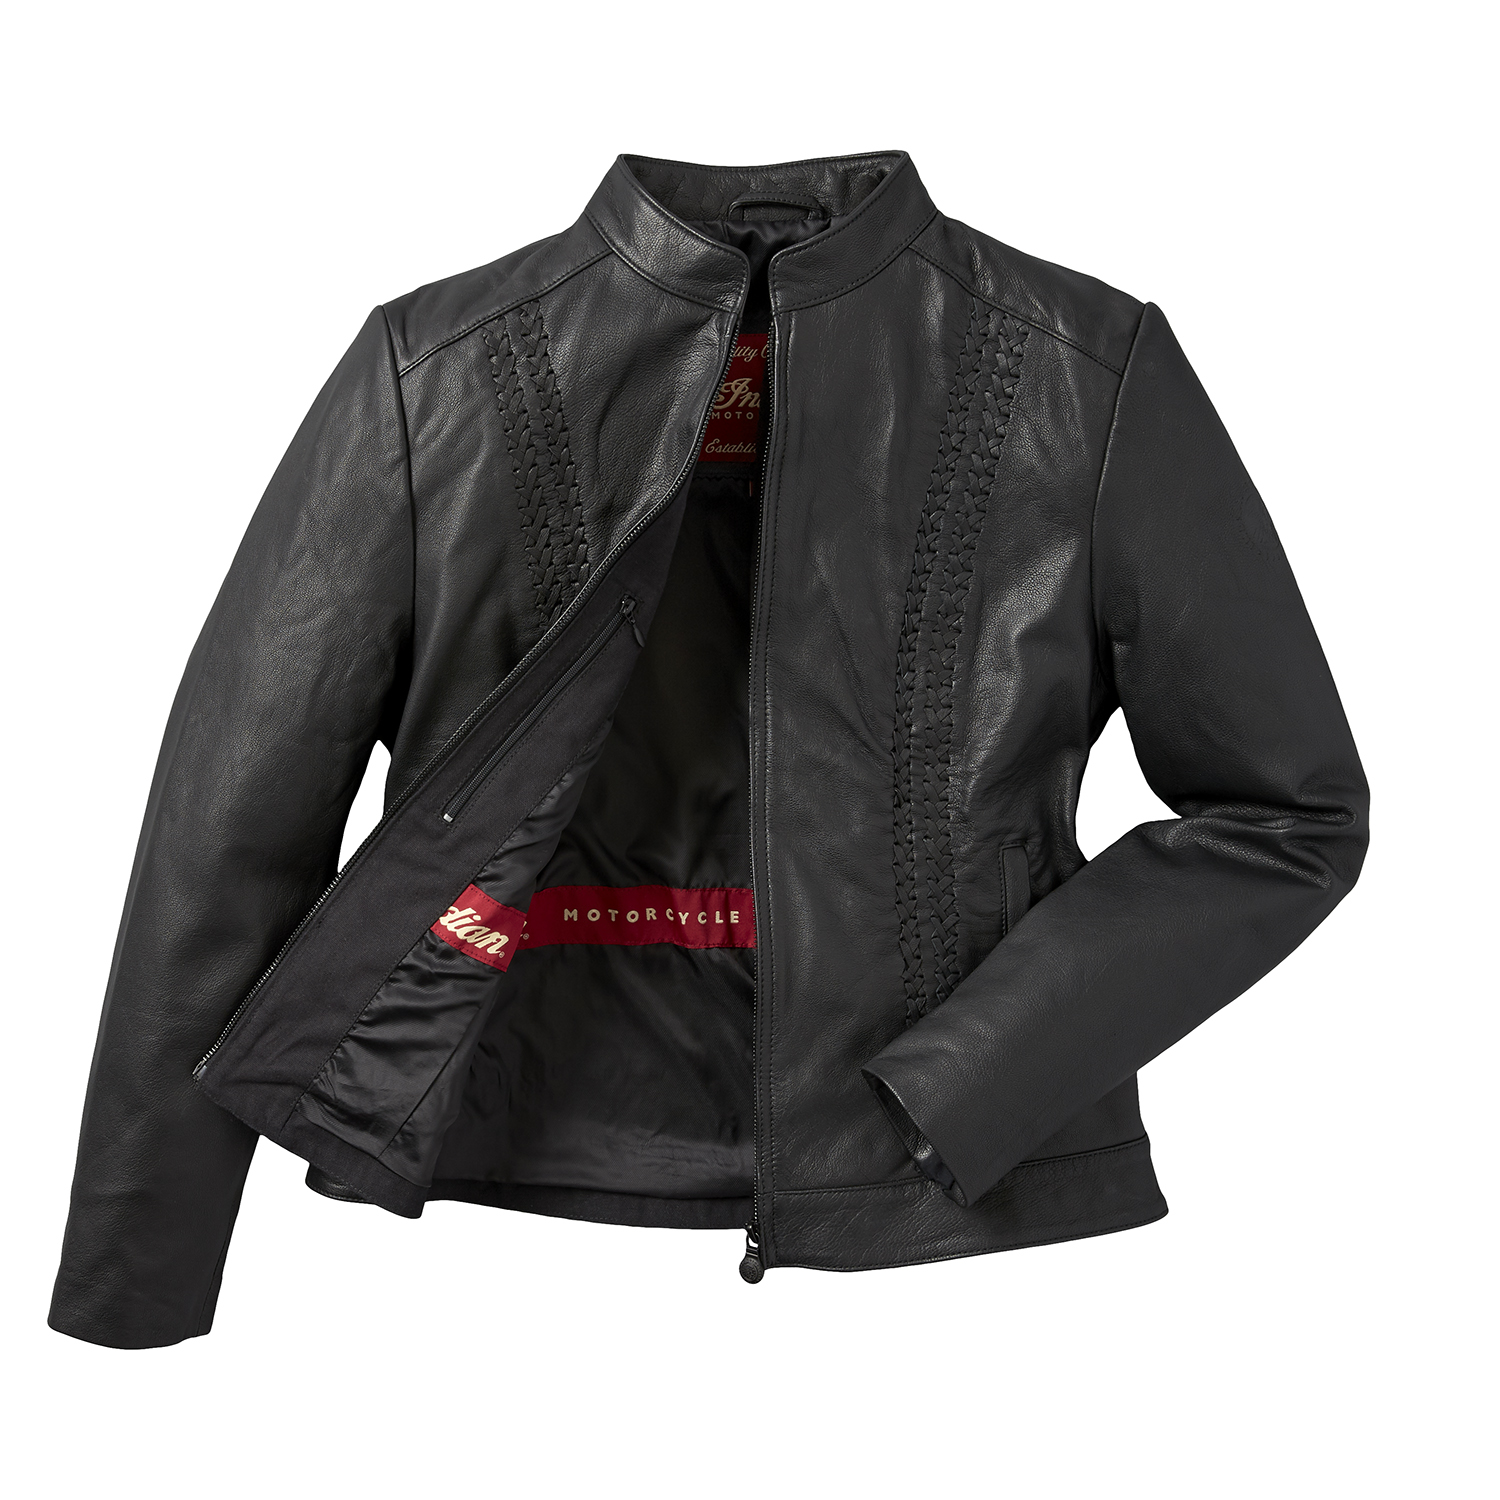 miniature 13 - Indian Motorcycle Women's Leather Charlotte Casual Jacket, Black